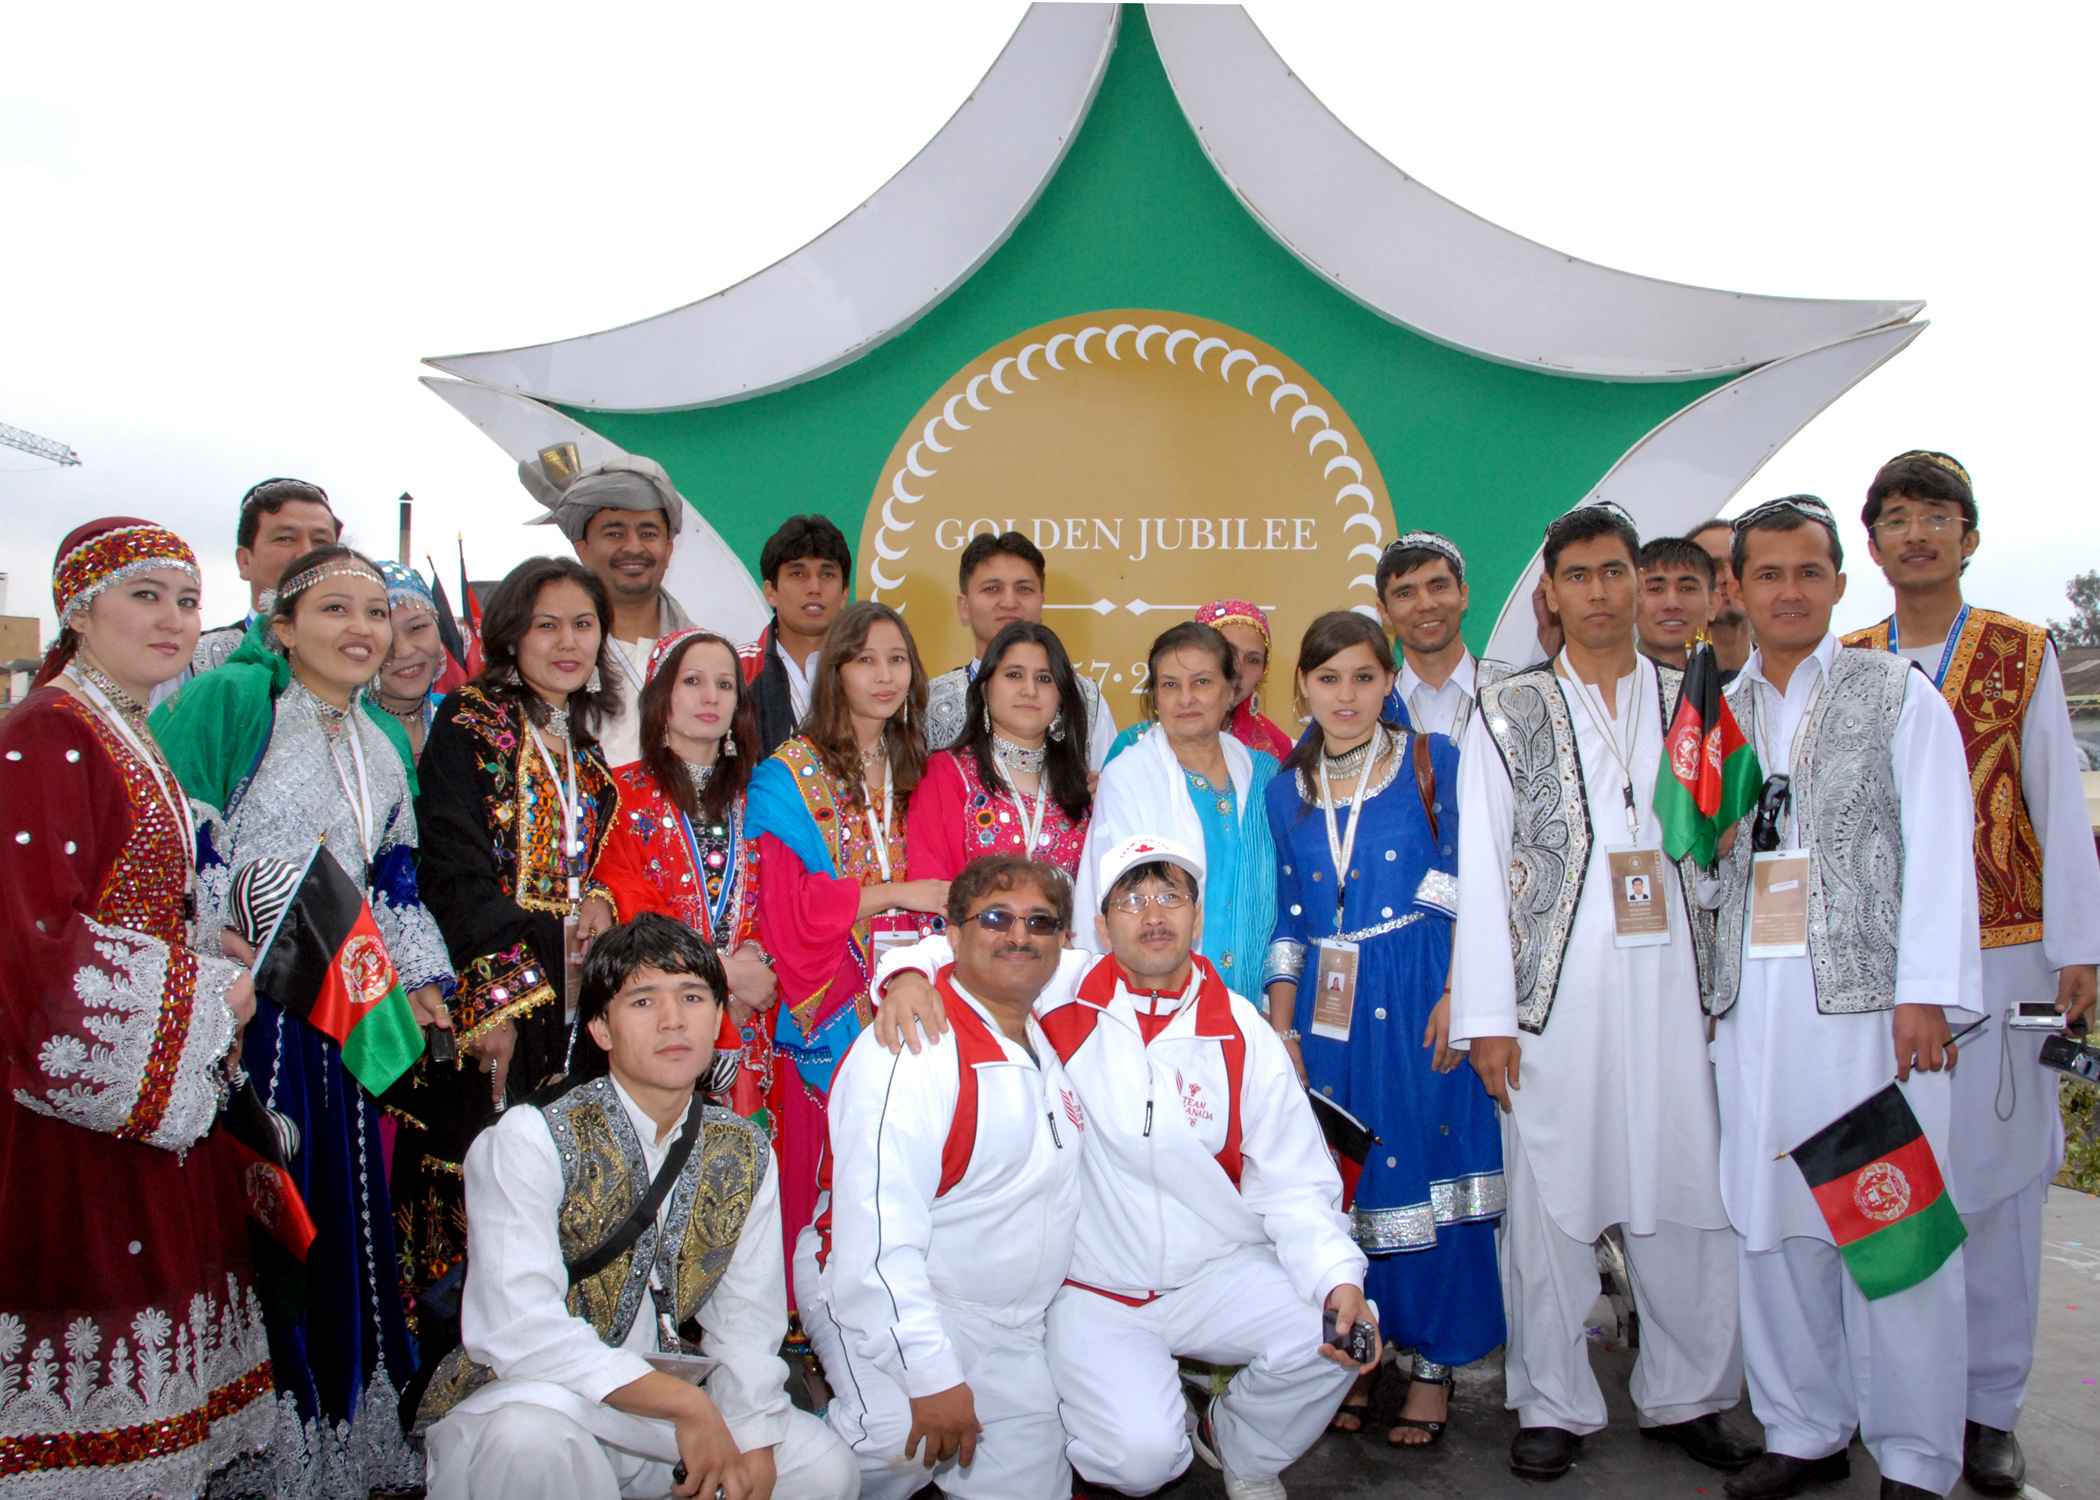 Athletes from several countries spontaneously gathered for a photograph following the Opening Ceremony of the Golden Jubilee Games. Photo: Rahim Khoja (Hakim Sons)